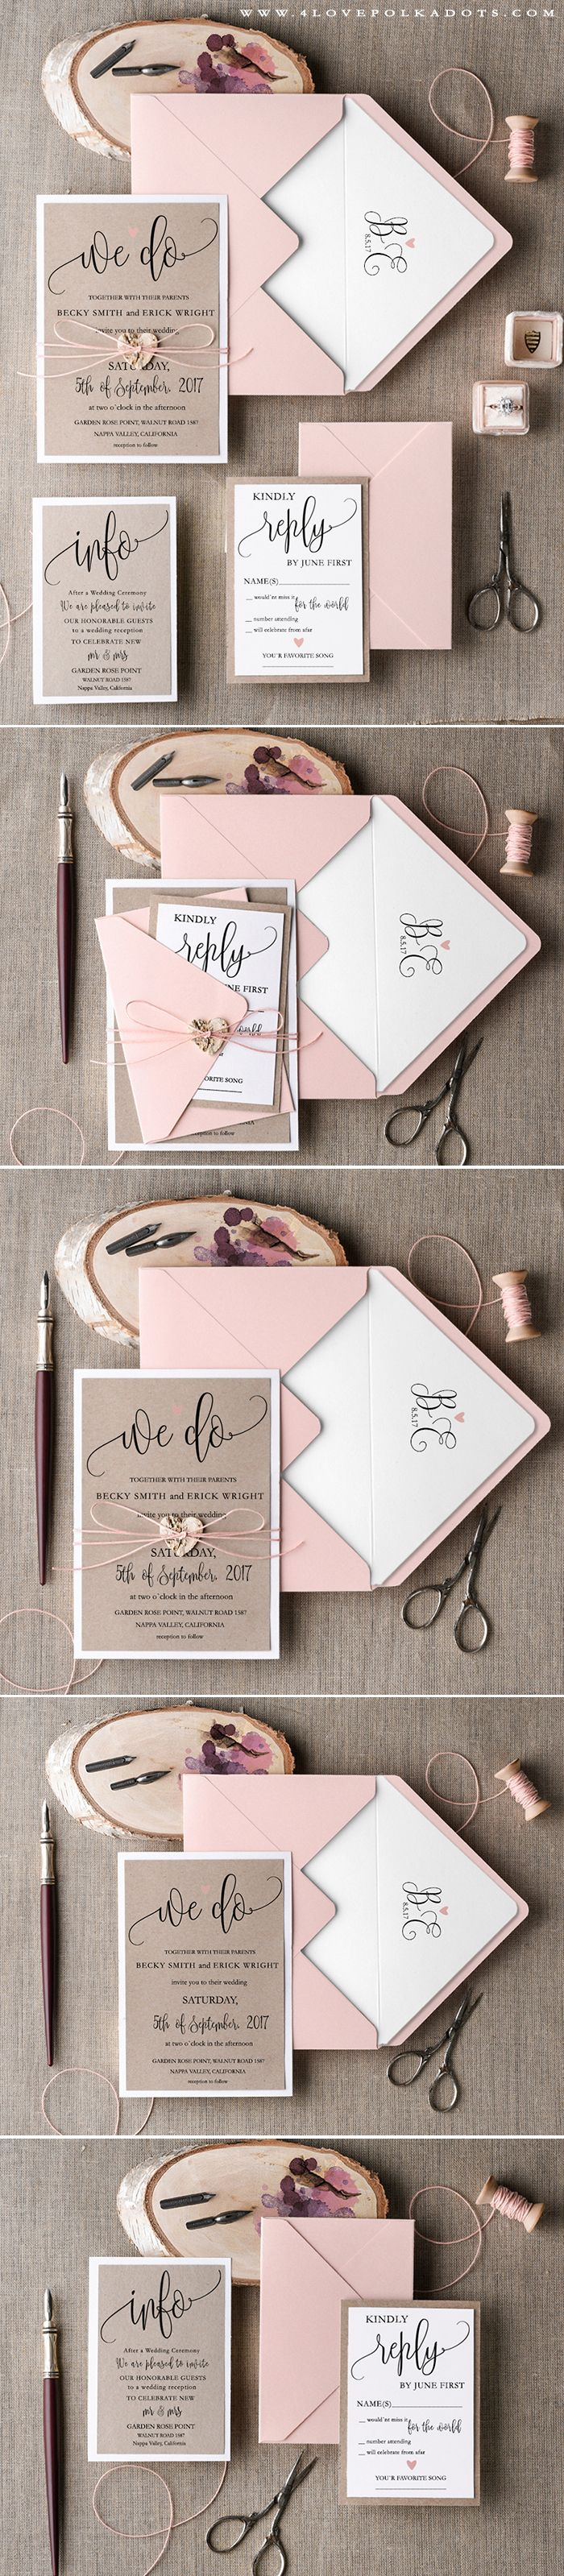 Pink & Eco Handmade Wedding Invitation #summerwedding ...